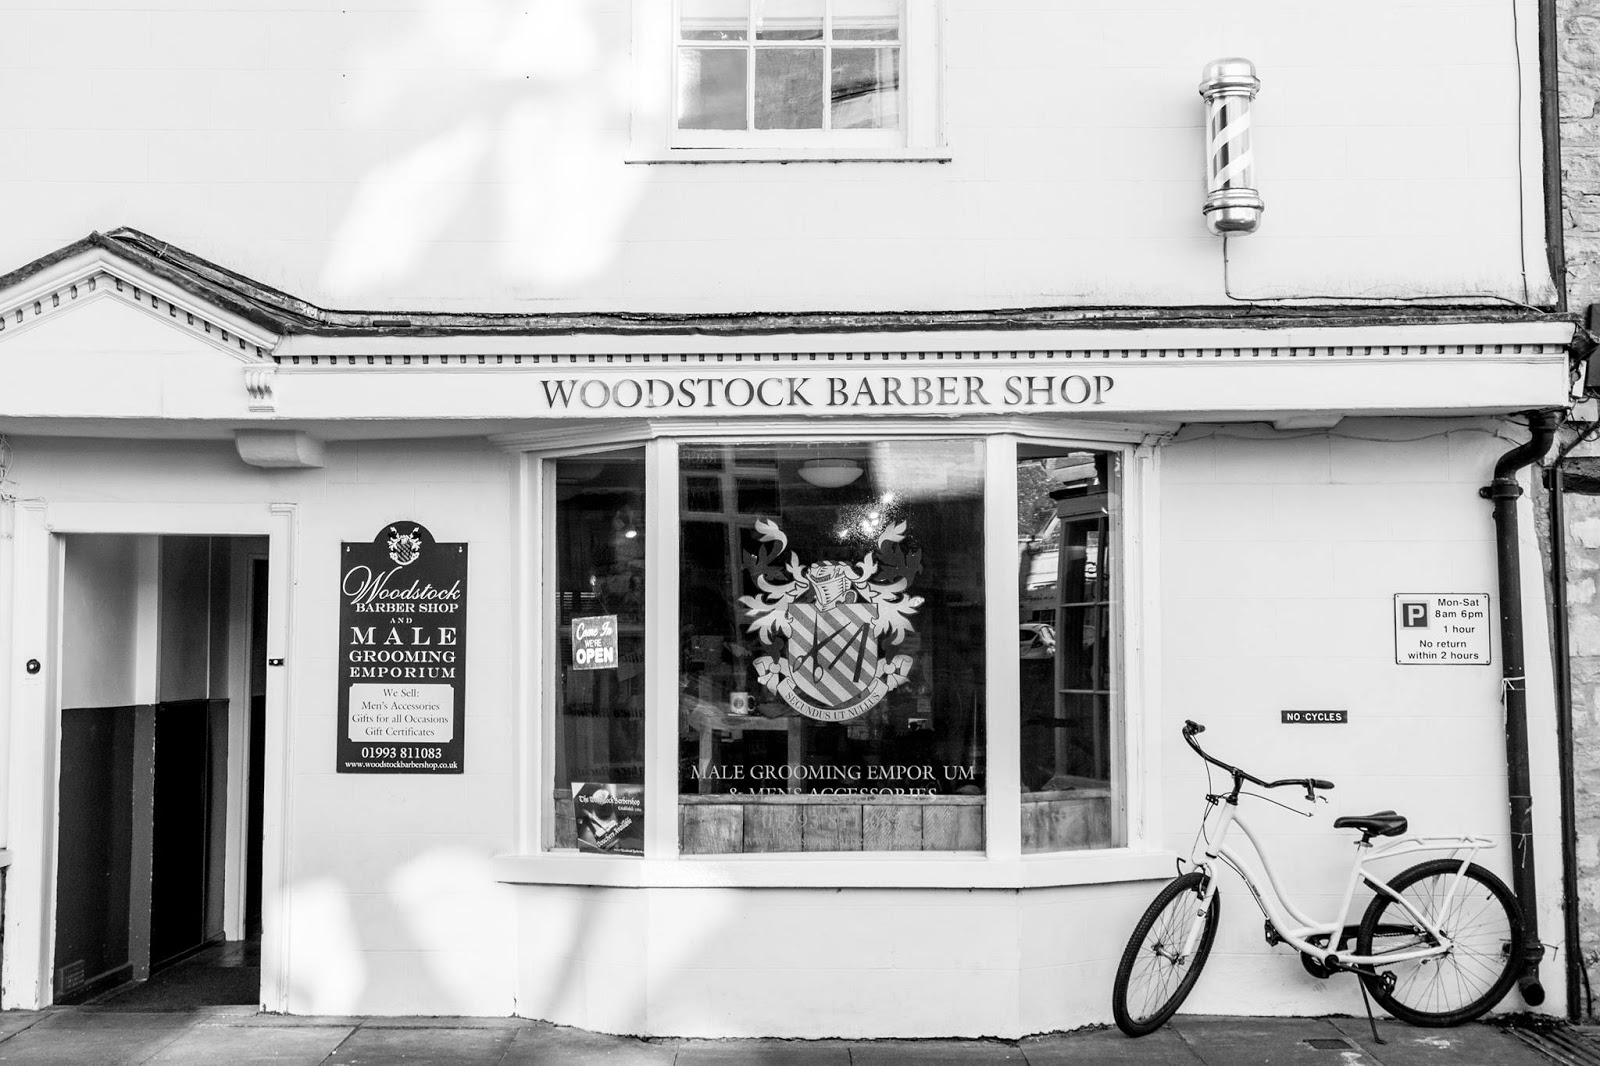 The Woodstock Barber Shop